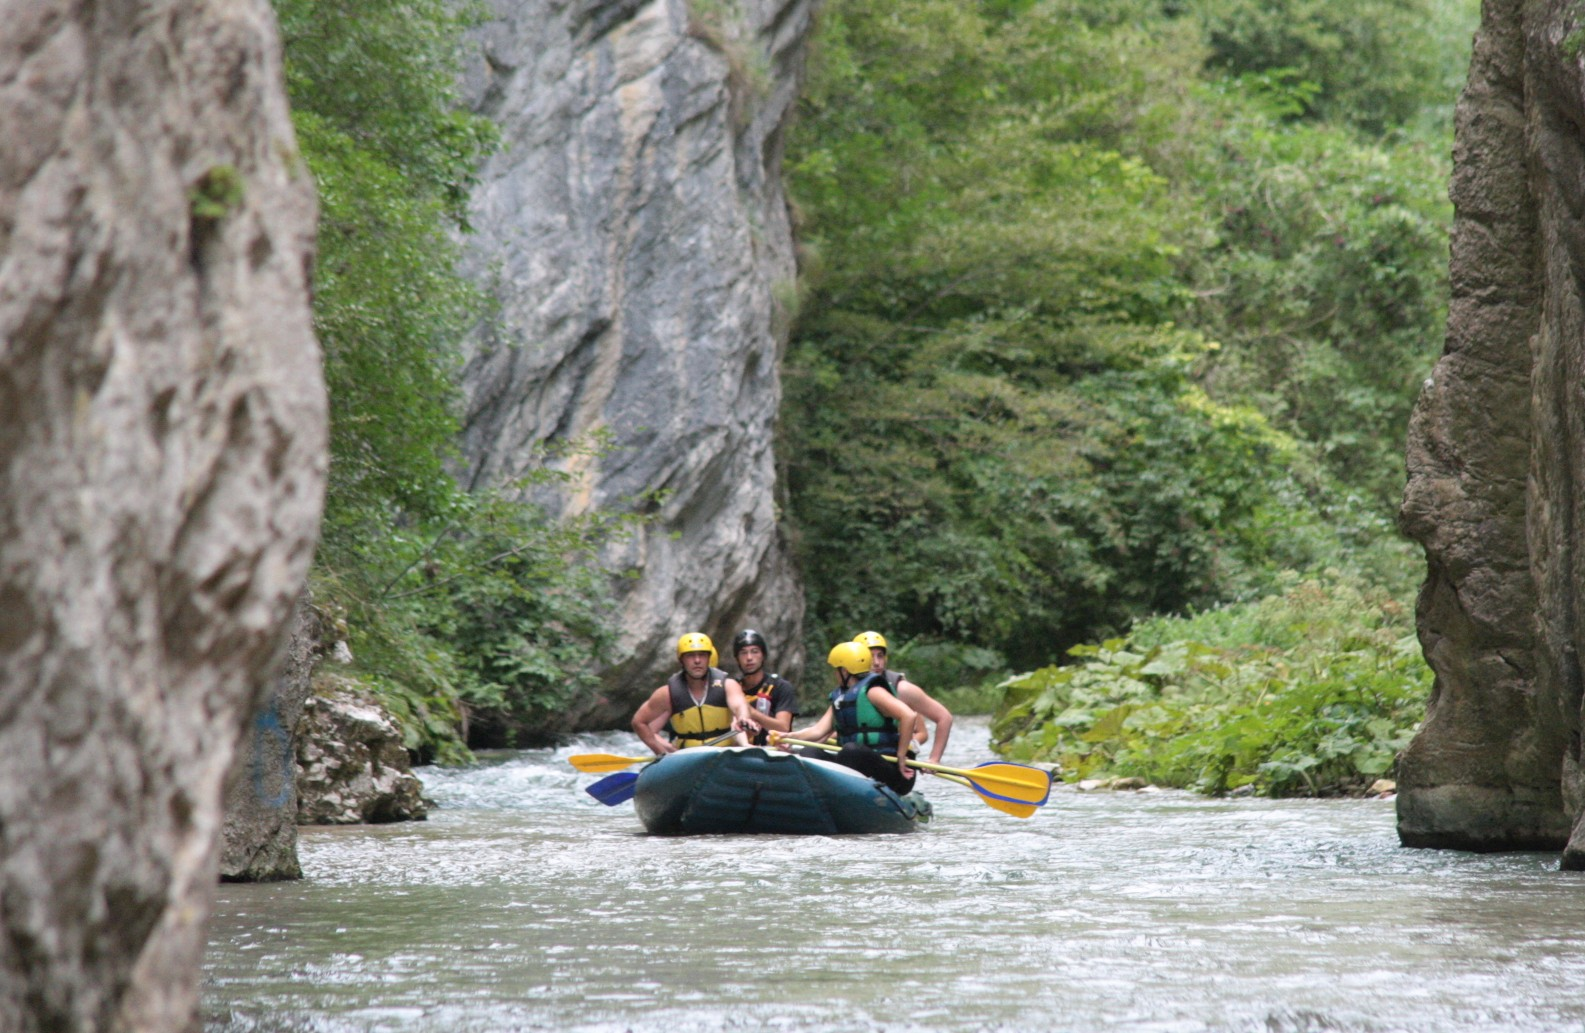 Soft Rafting - Corno River from Serravalle to Biselli